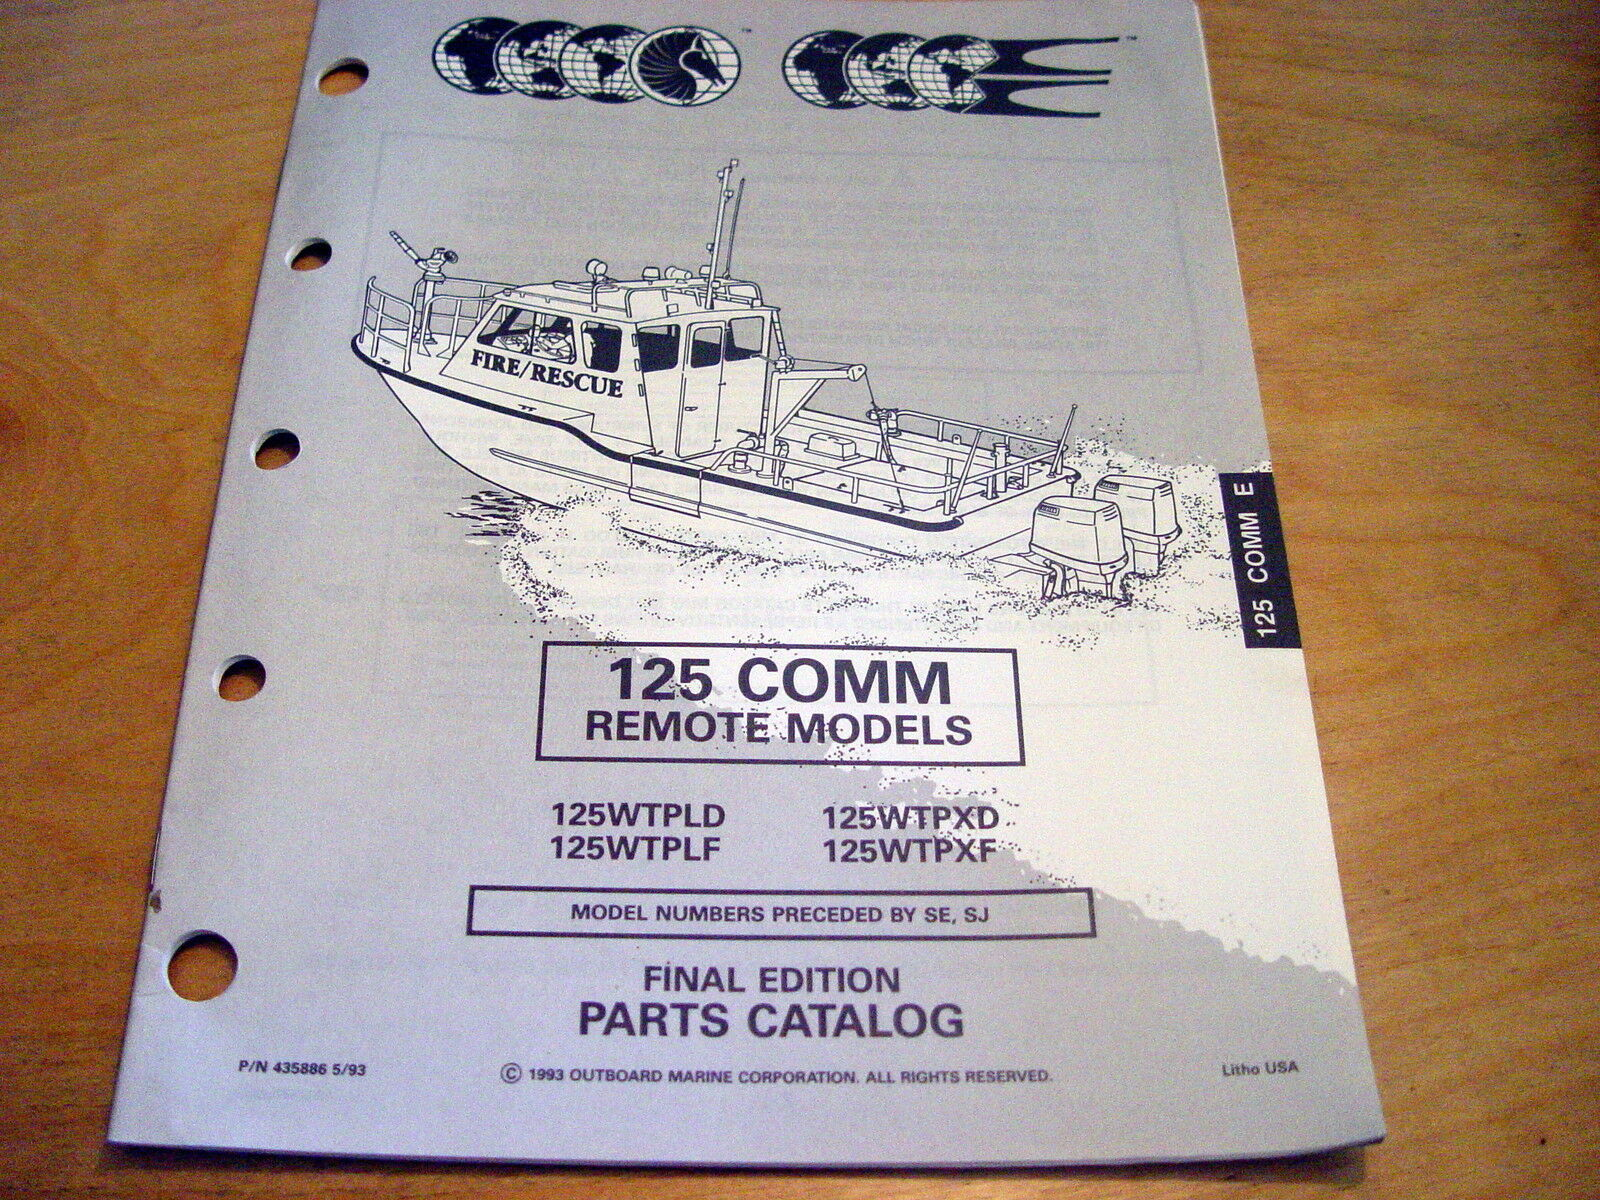 Evinrude Johnson 125 HP Commercial Parts Manual 1993 OMC Catalog Outboard Motor 1 of 1Only 1 available ...